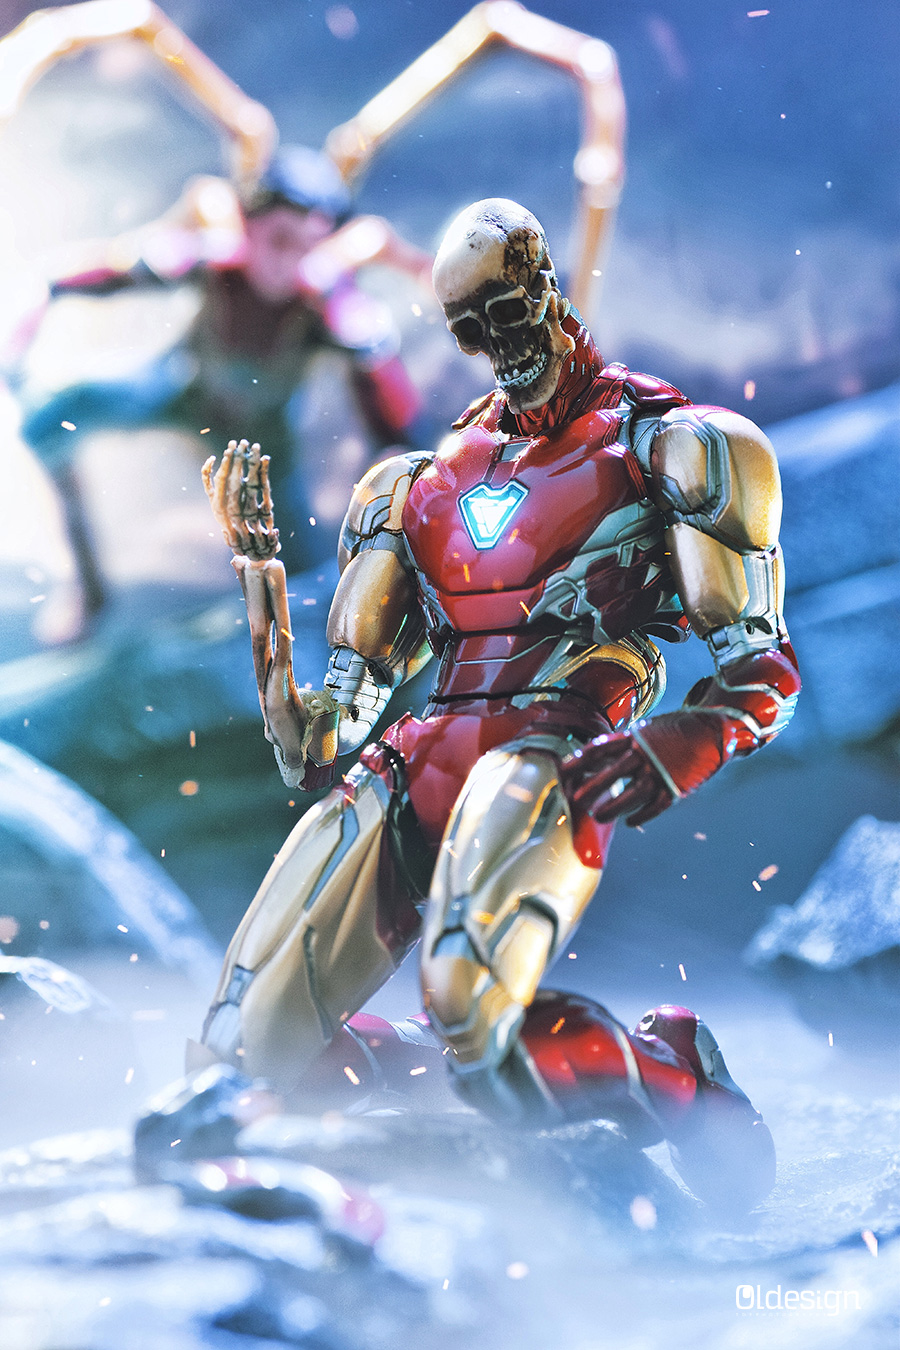 12_ironman_oldesign